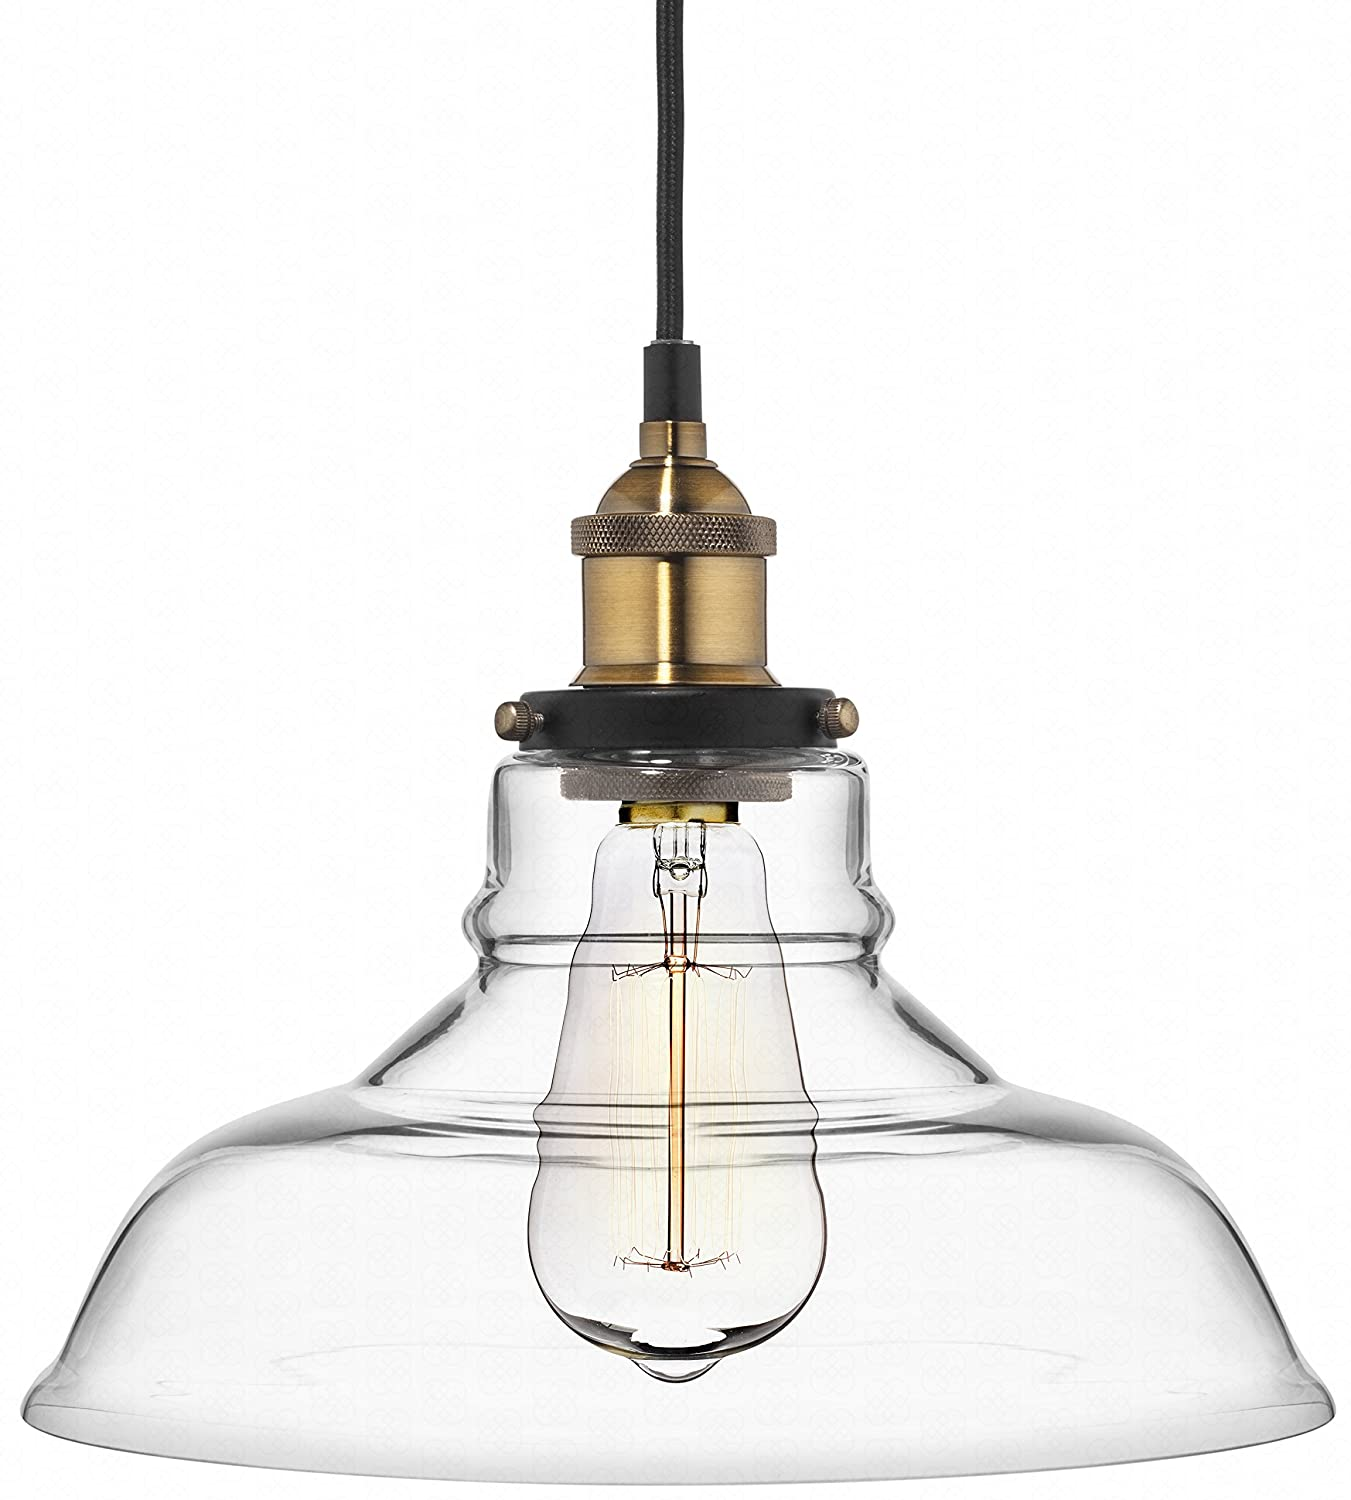 replacement glass lamp most pendant originality fixture globe mean light chandelier shades stained shade